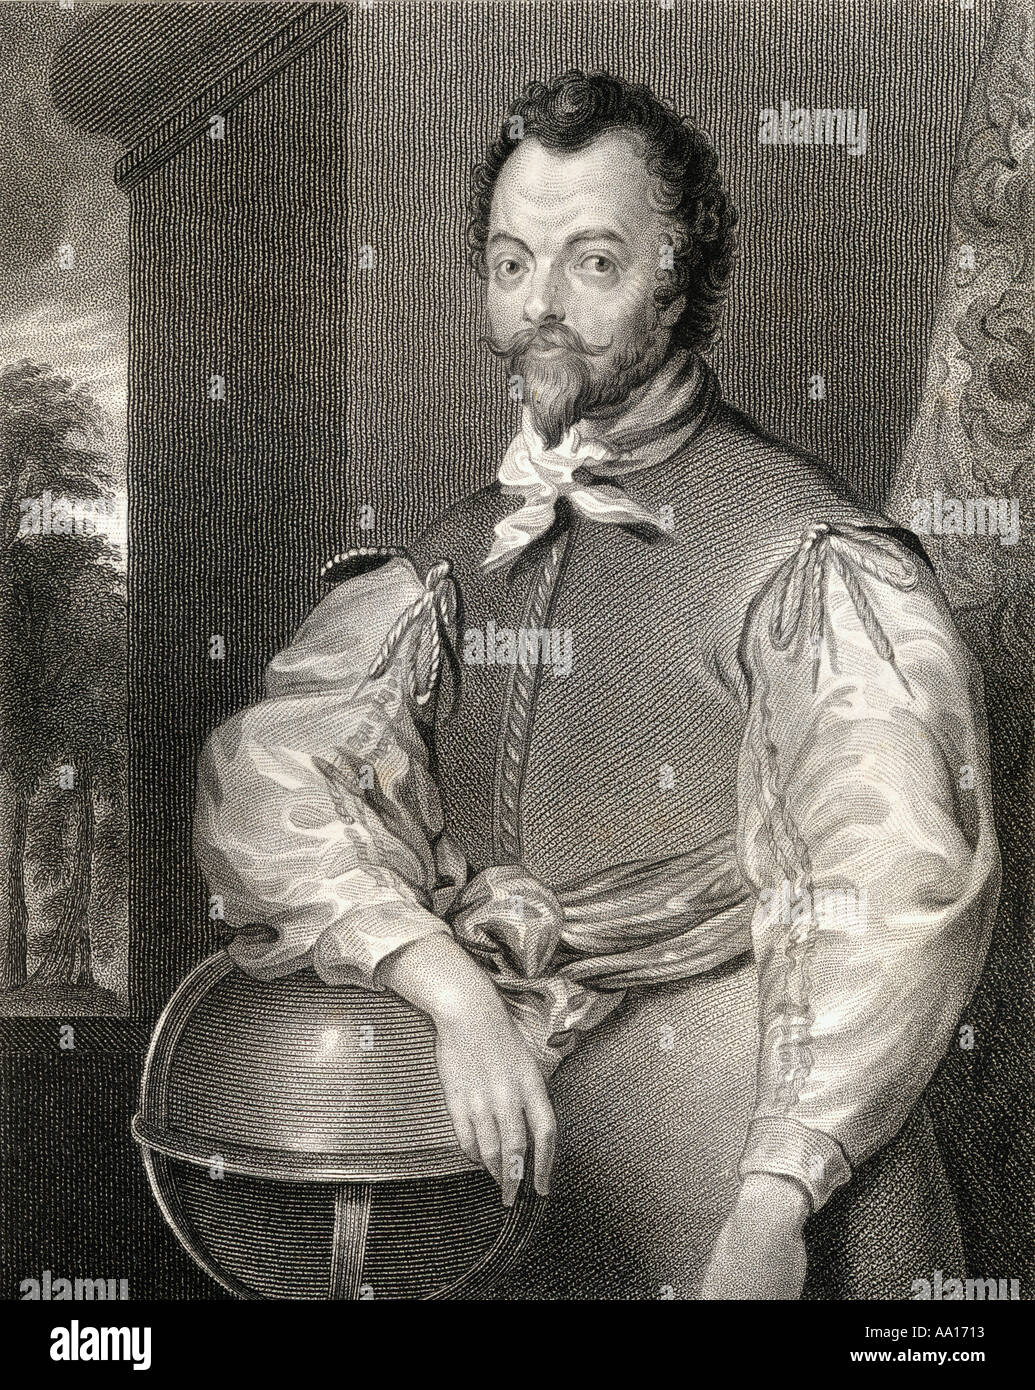 Sir Francis Drake, c.1540 - 1596.  English sea captain, privateer, slave trader, naval officer and explorer of the Elizabethan era. - Stock Image